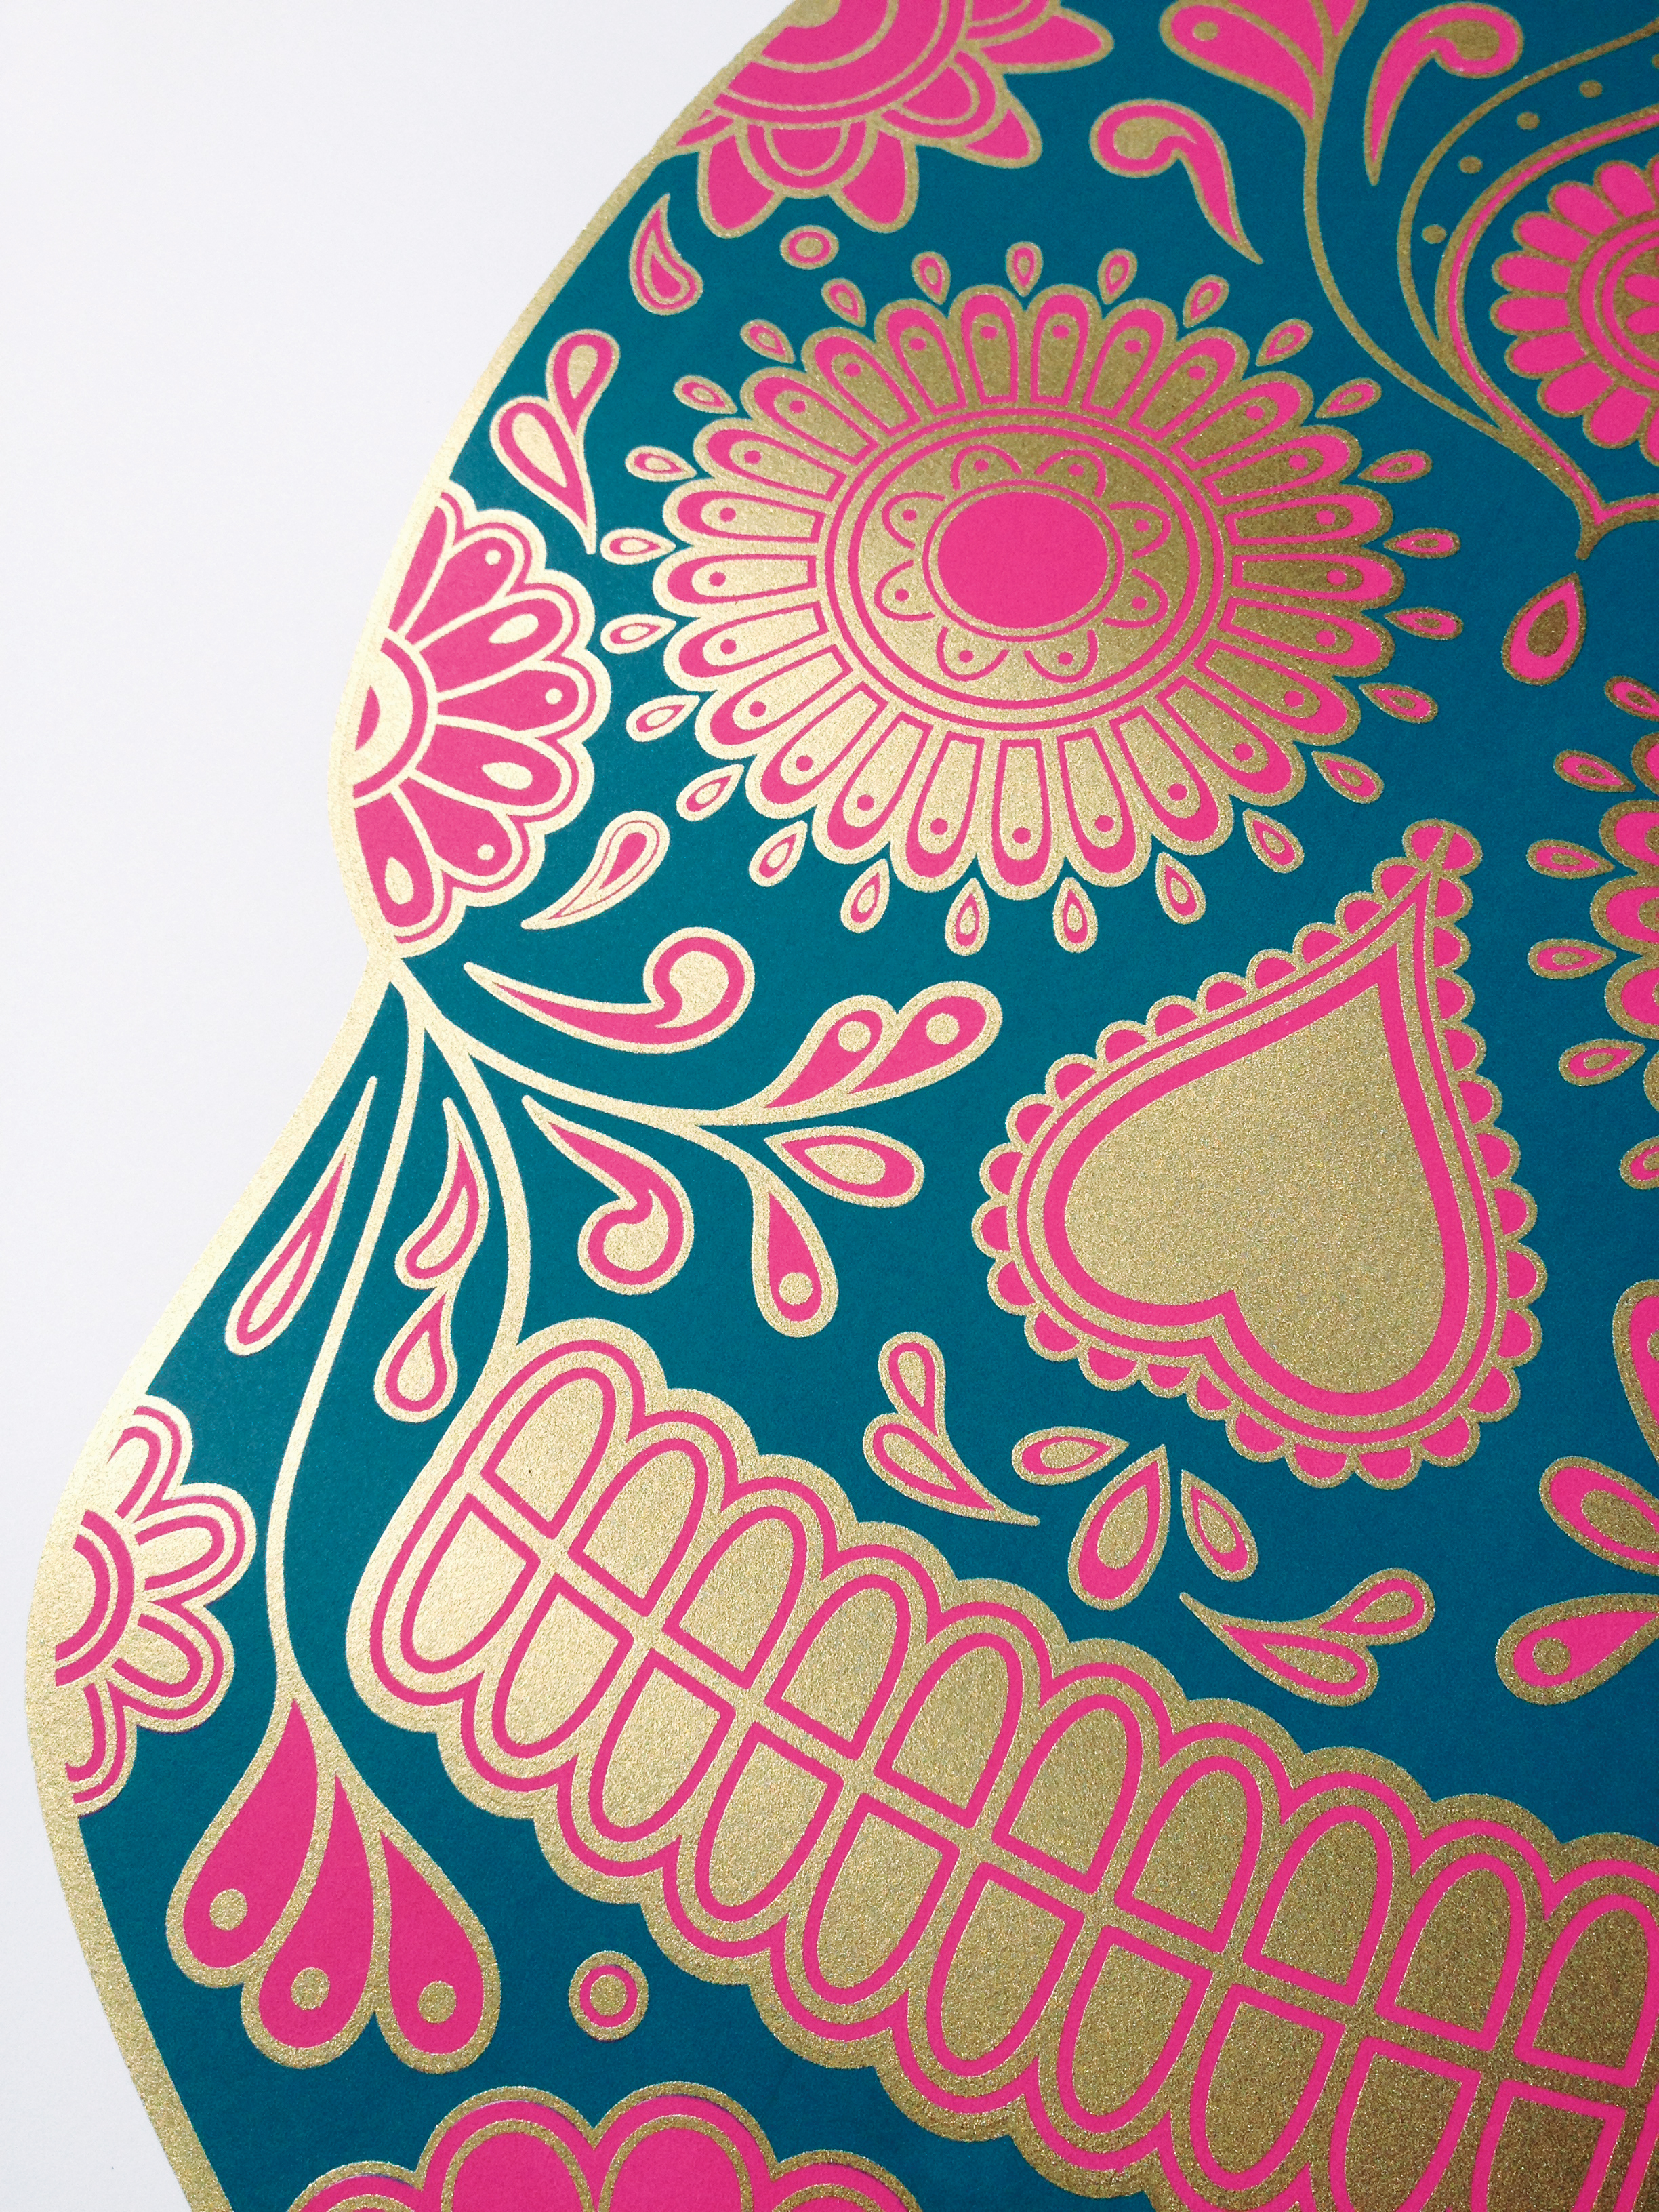 Sugar Skull Wallpaper Detail 3 2448x3264